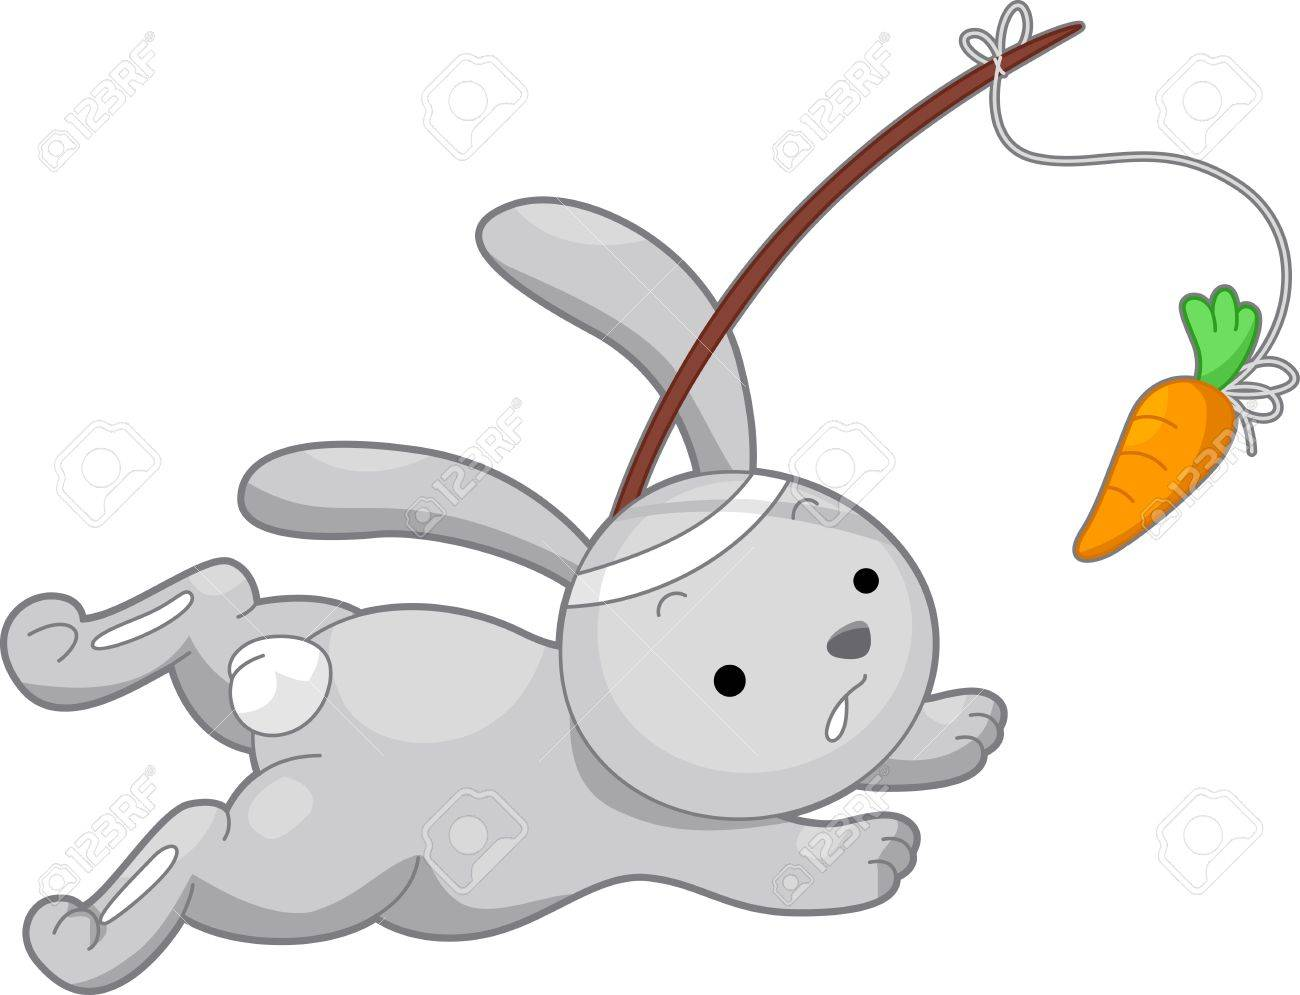 13898740-Illustration-of-a-Rabbit-Running-After-a-Carrot-Stock-Illustration.jpg